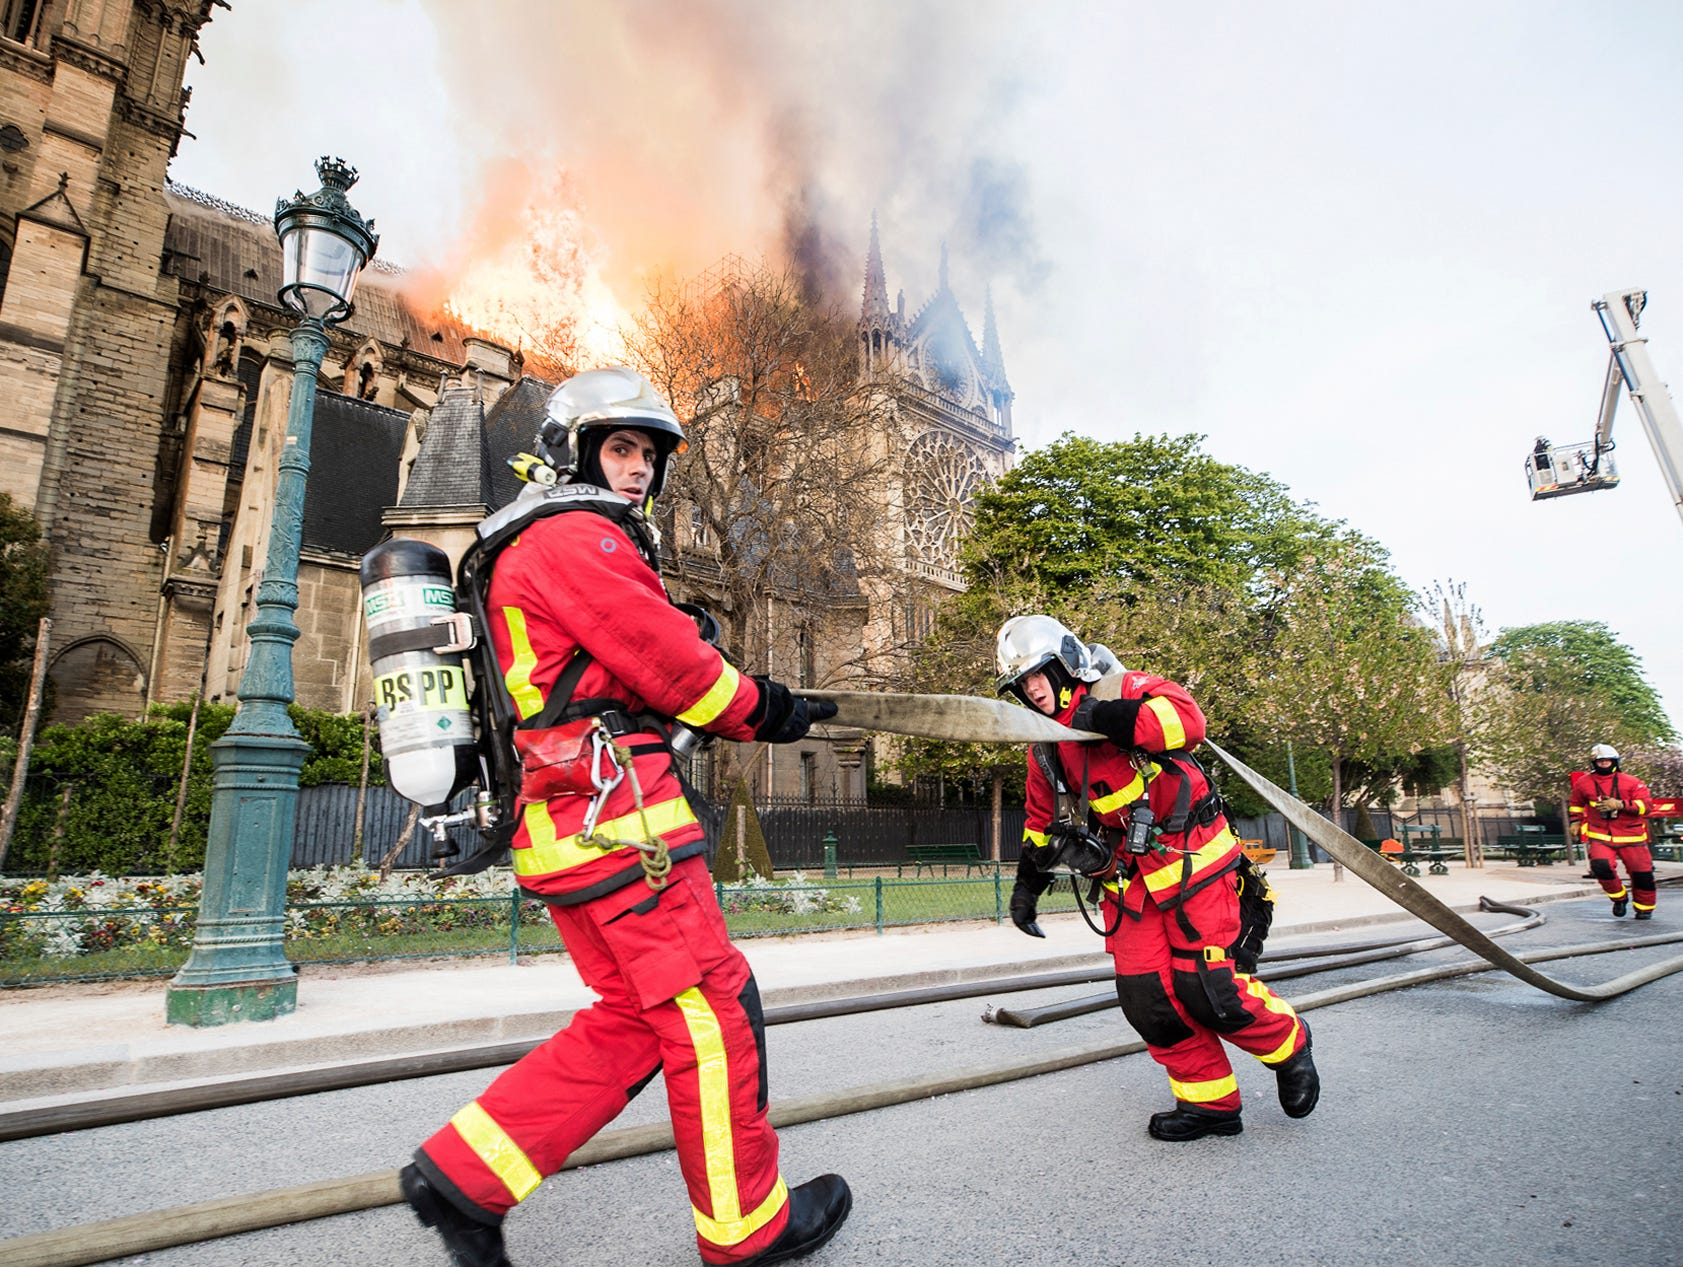 This photo provided Tuesday April 16, 2019 by the Paris Fire Brigade shows fire fighters pulling a hose by the burning Notre Dame cathedral, Monday April 15, 2019. Experts assessed the blackened shell of Paris' iconic Notre Dame Tuesday morning to establish next steps to save what remains after a devastating fire destroyed much of the cathedral that had survived almost 900 years of history. (Benoit Moser, BSPP via AP)